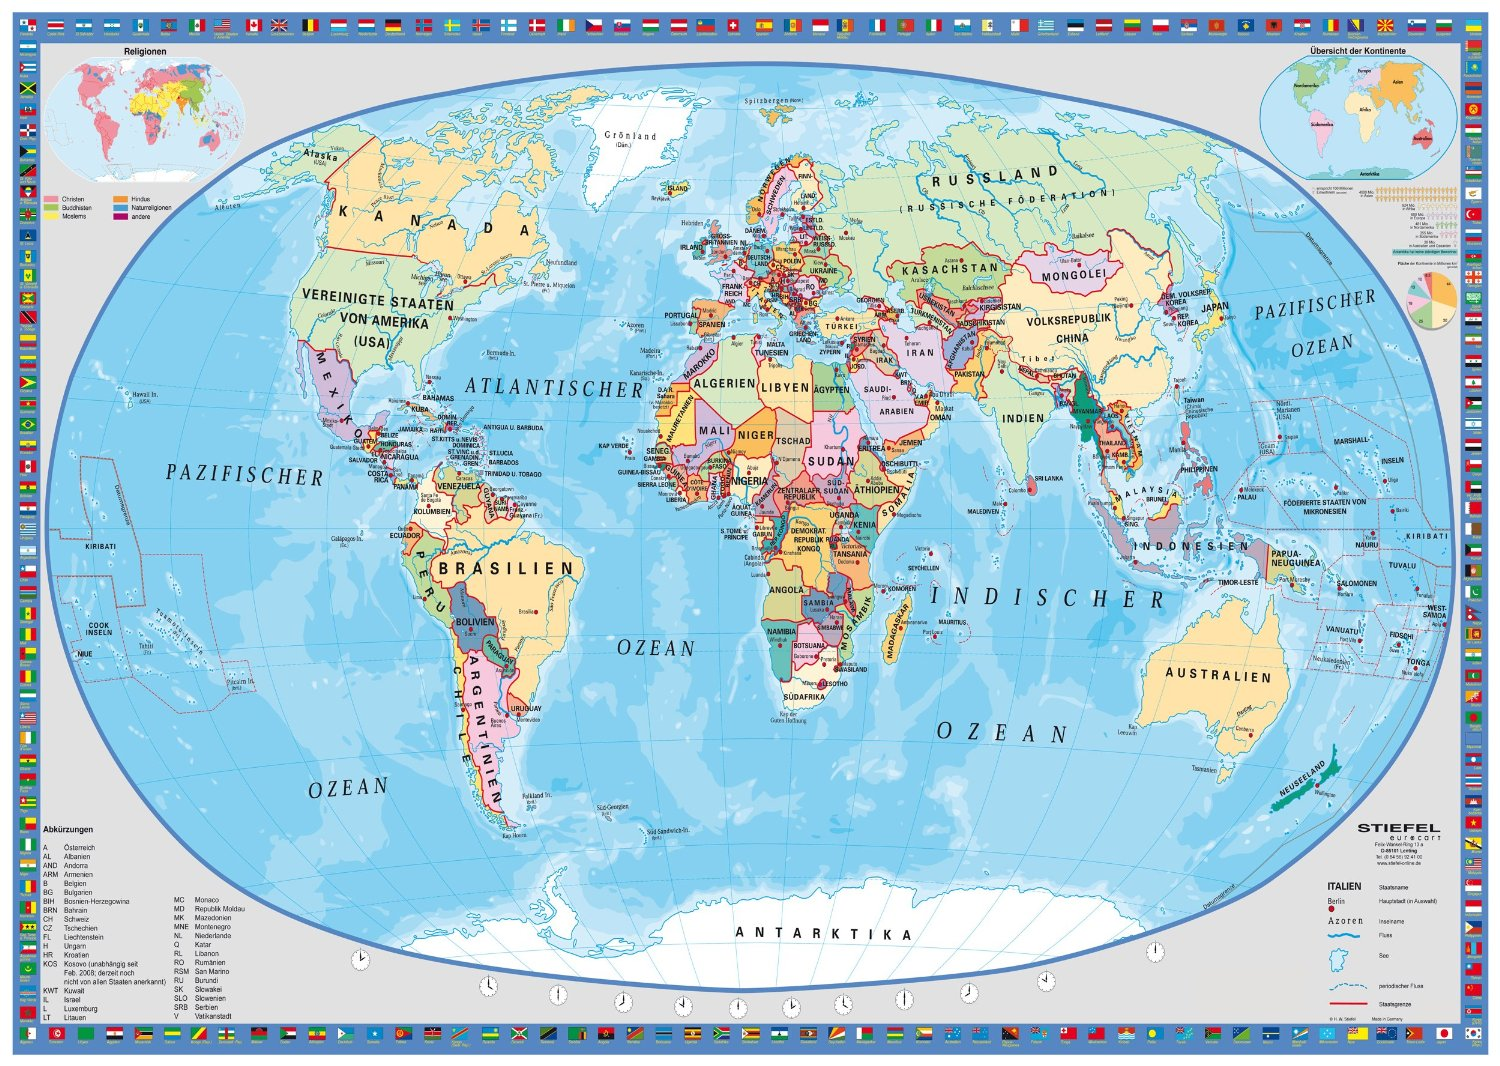 Puzzle political world map schmidt spiele 58186 1000 pieces jigsaw political world map gumiabroncs